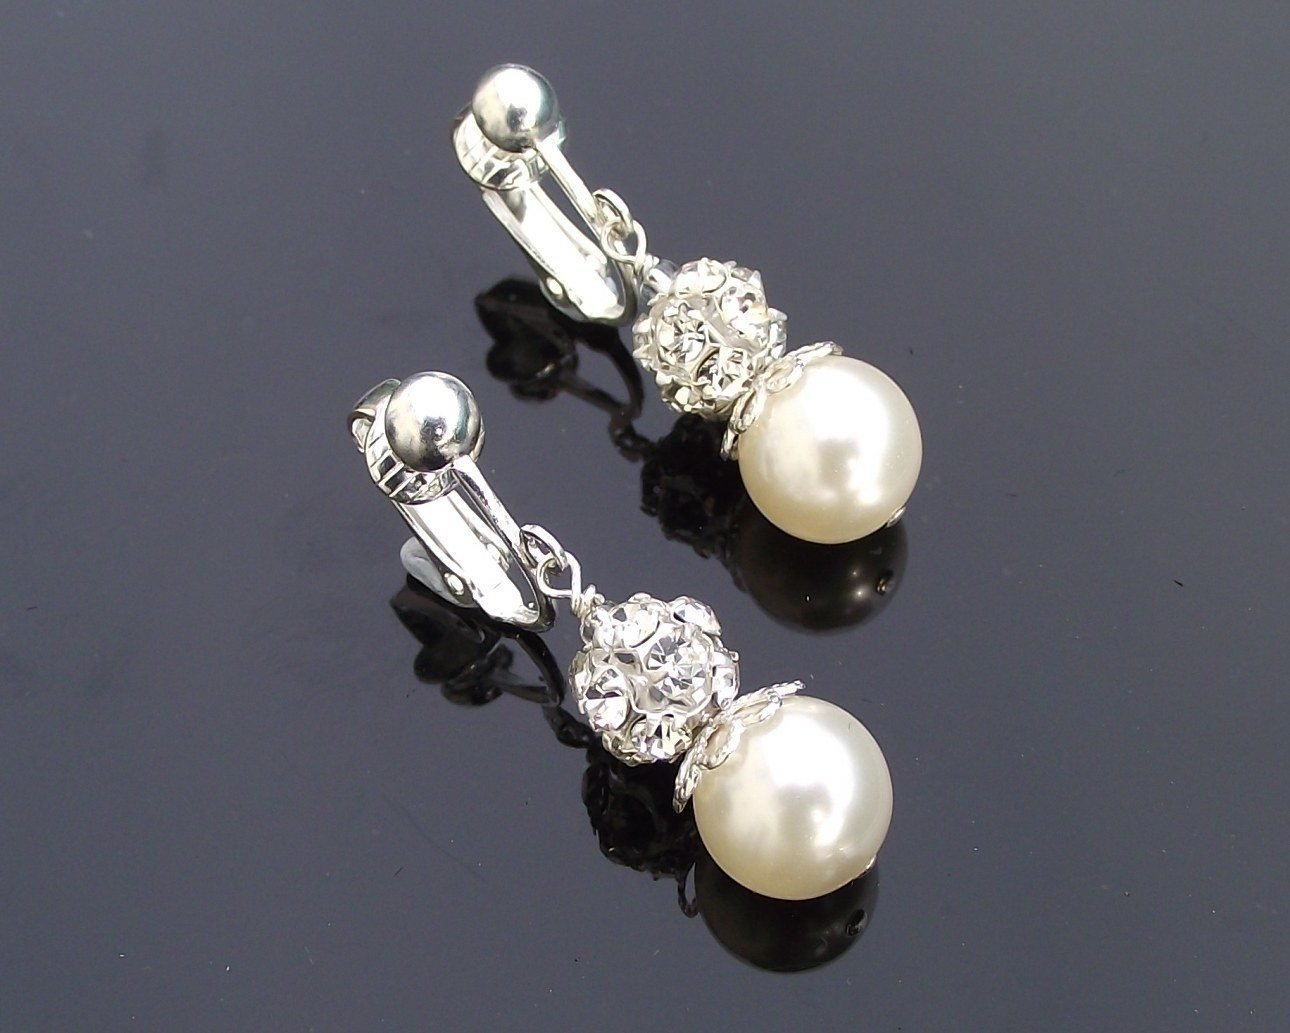 Wedding Earrings - Clip-on Beautiful Pearl & Crystal Encrusted Drop Earrings, Joy